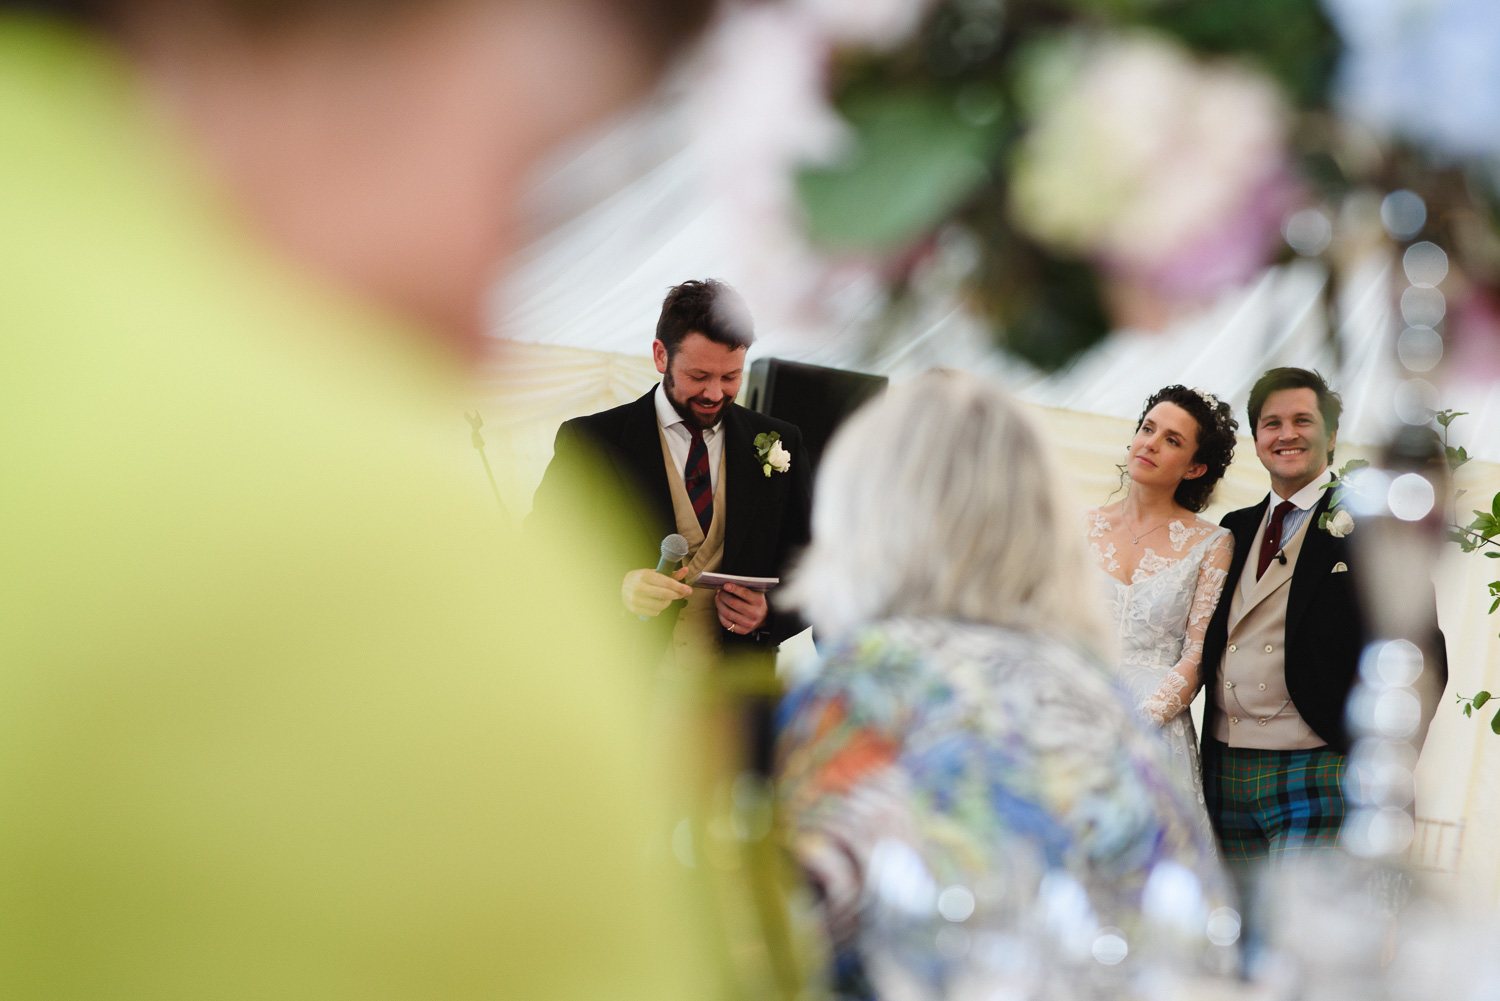 The Best Mans speech at Lottie and Alastairs Cotswold wedding.